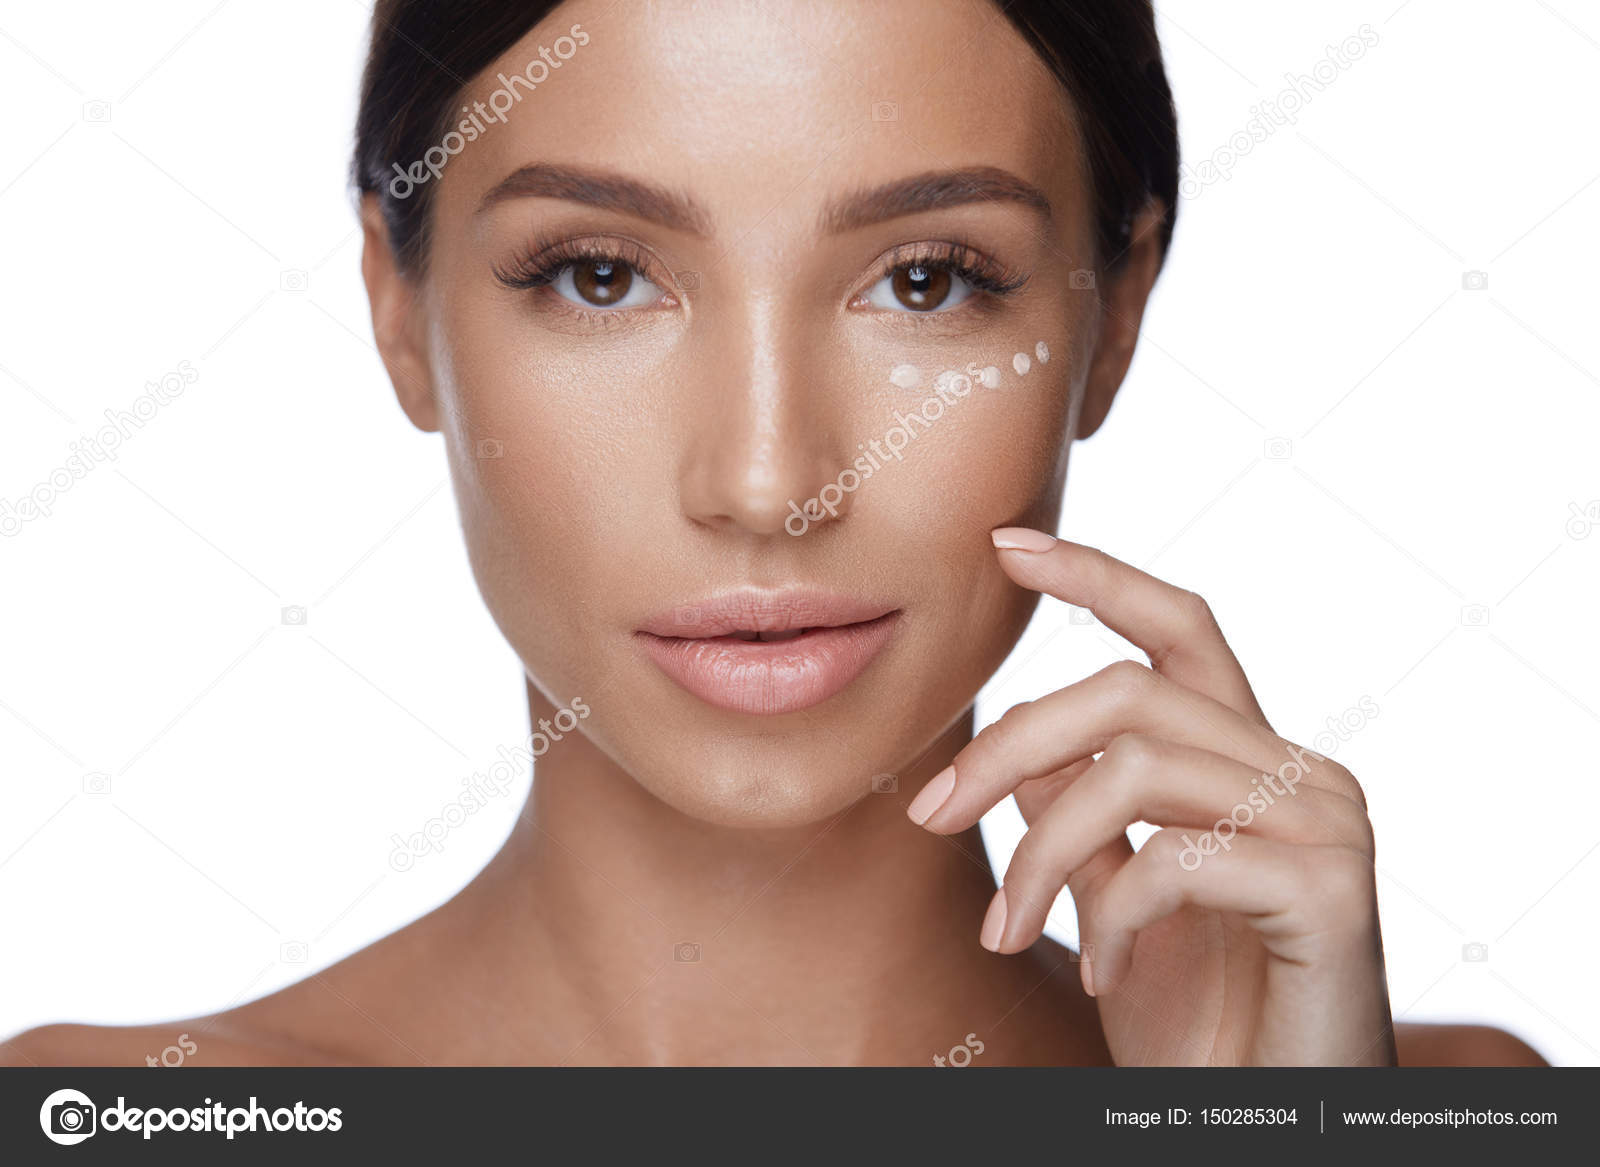 Woman Beauty Face With Concealer Under Eyes And Beautiful Makeup